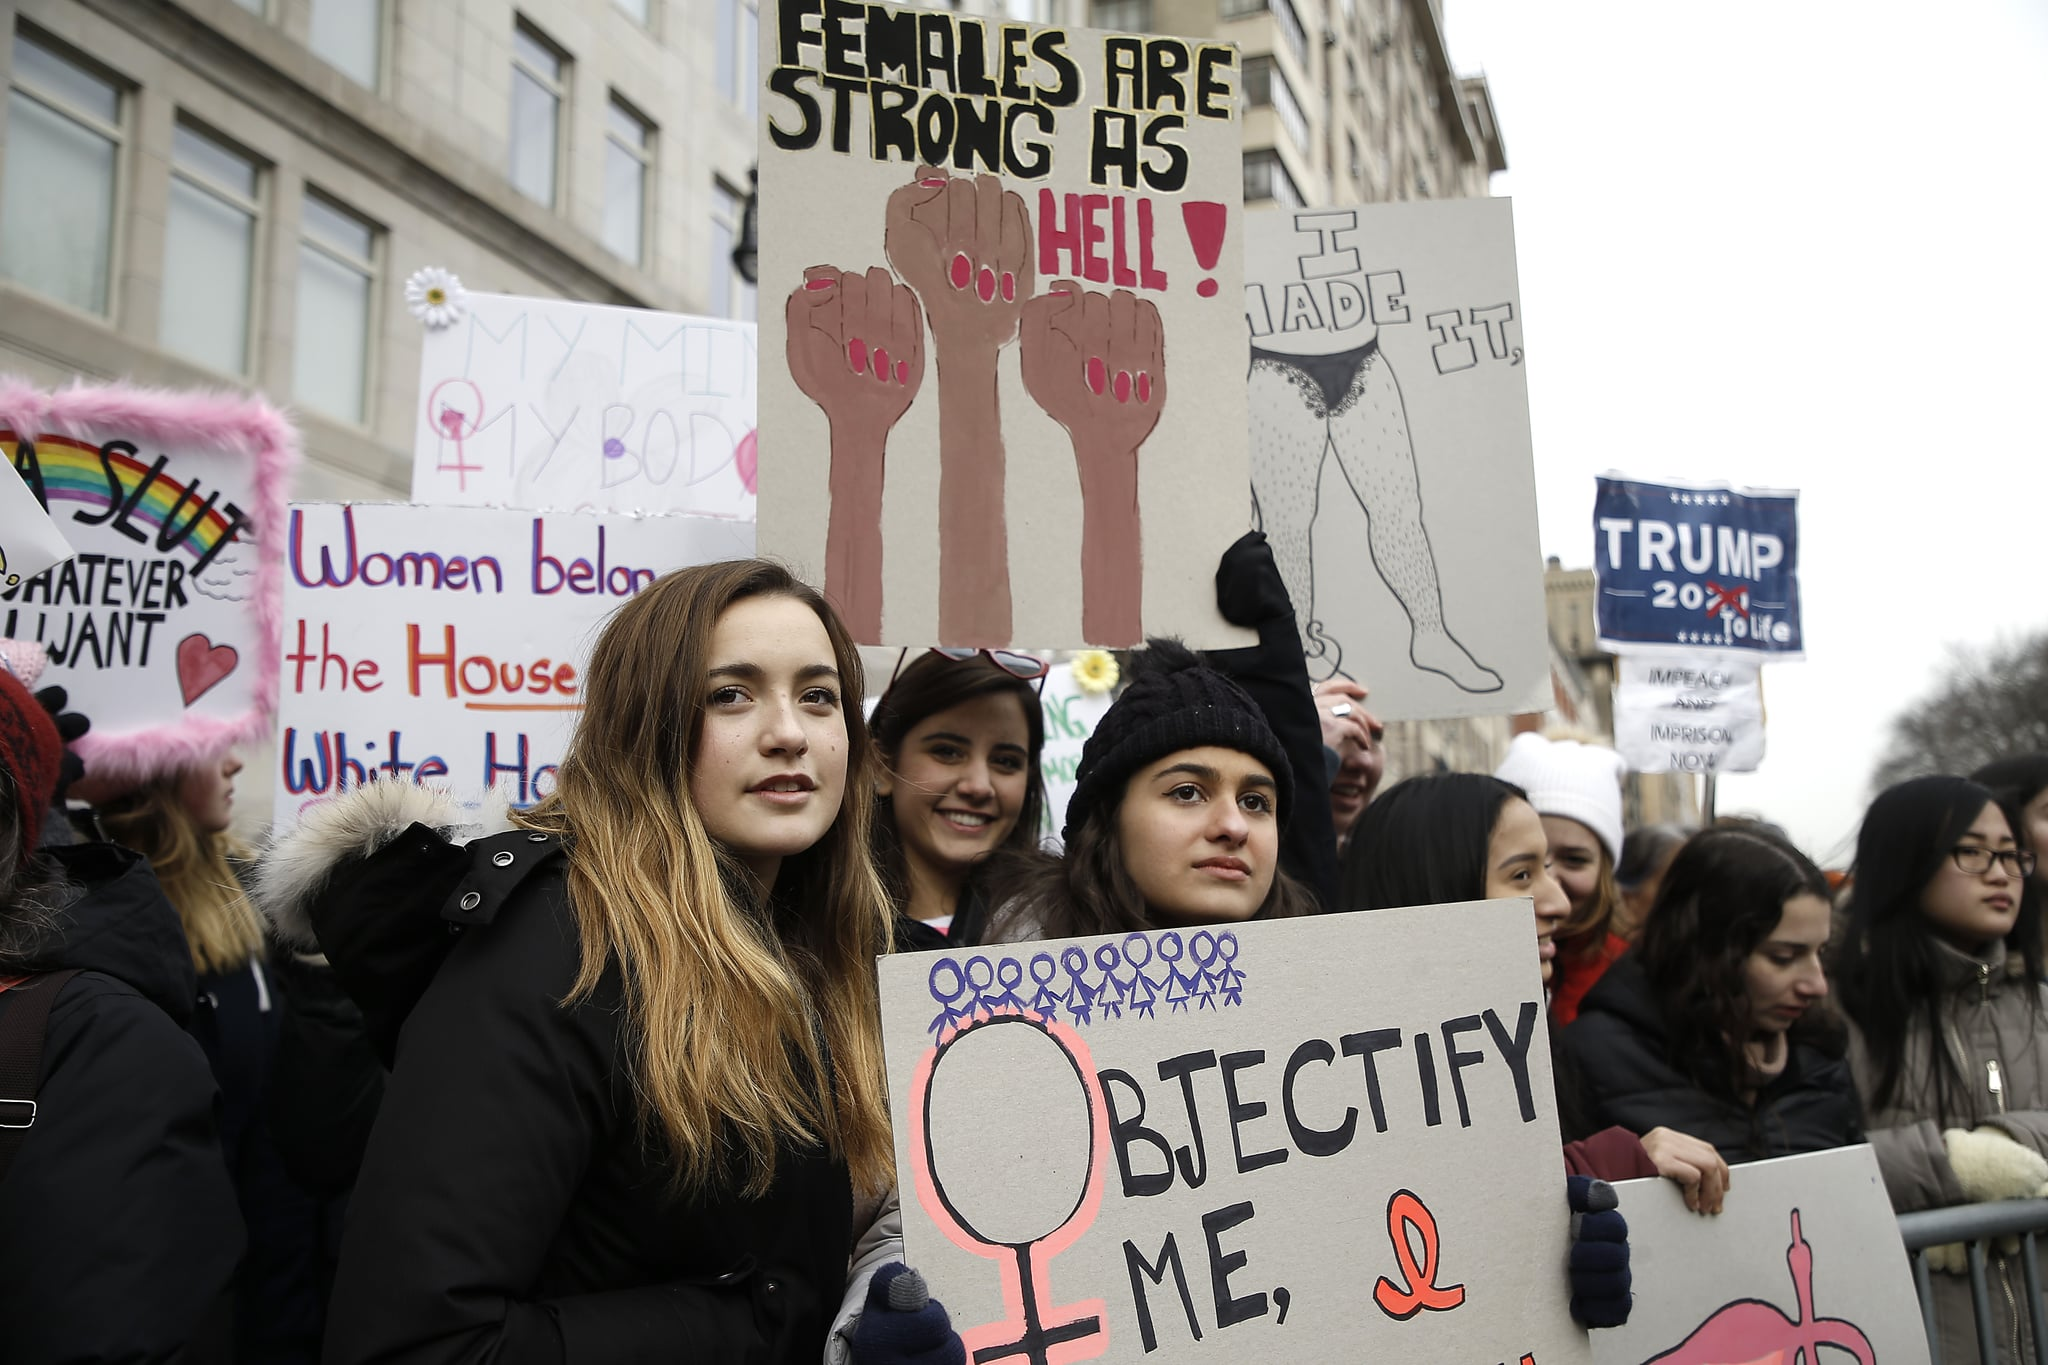 NEW YORK, NY  - JANUARY 18: Demonstrators participate in the 2020 Women's March on January 18, 2020 in New York City. (Photo by John Lamparski/Getty Images)